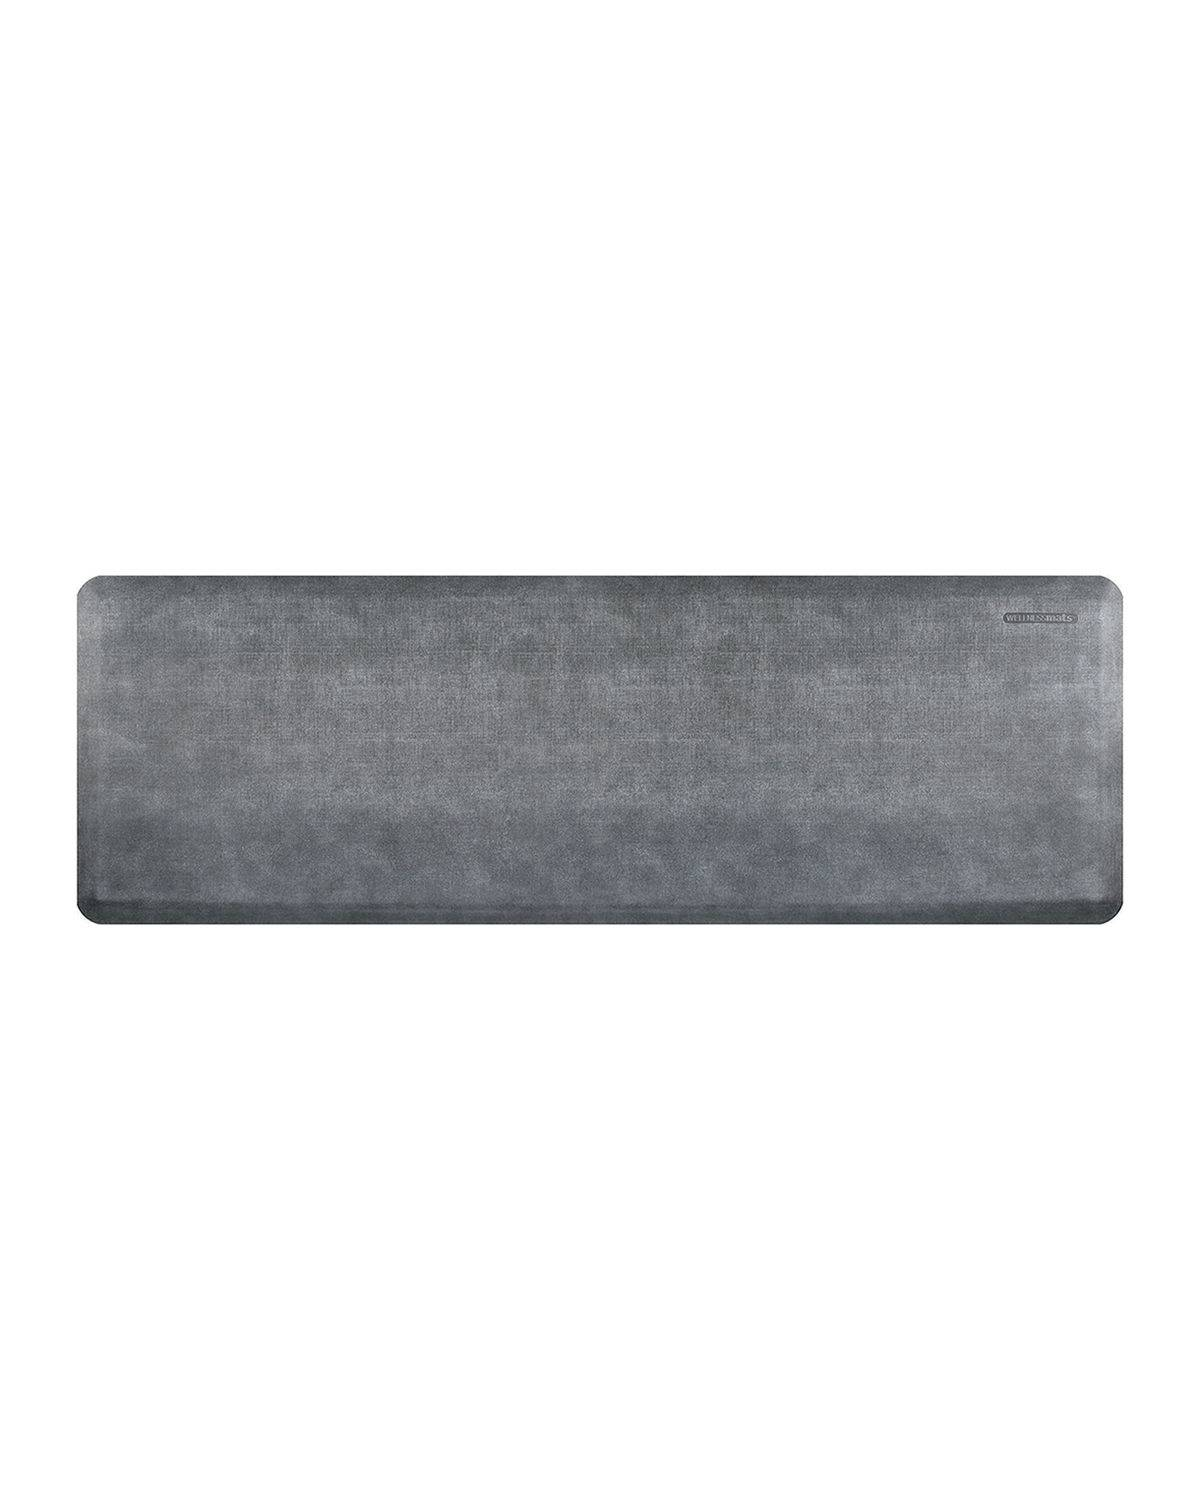 WellnessMats Linen Anti-Fatigue Kitchen Mat, 6' x 2'